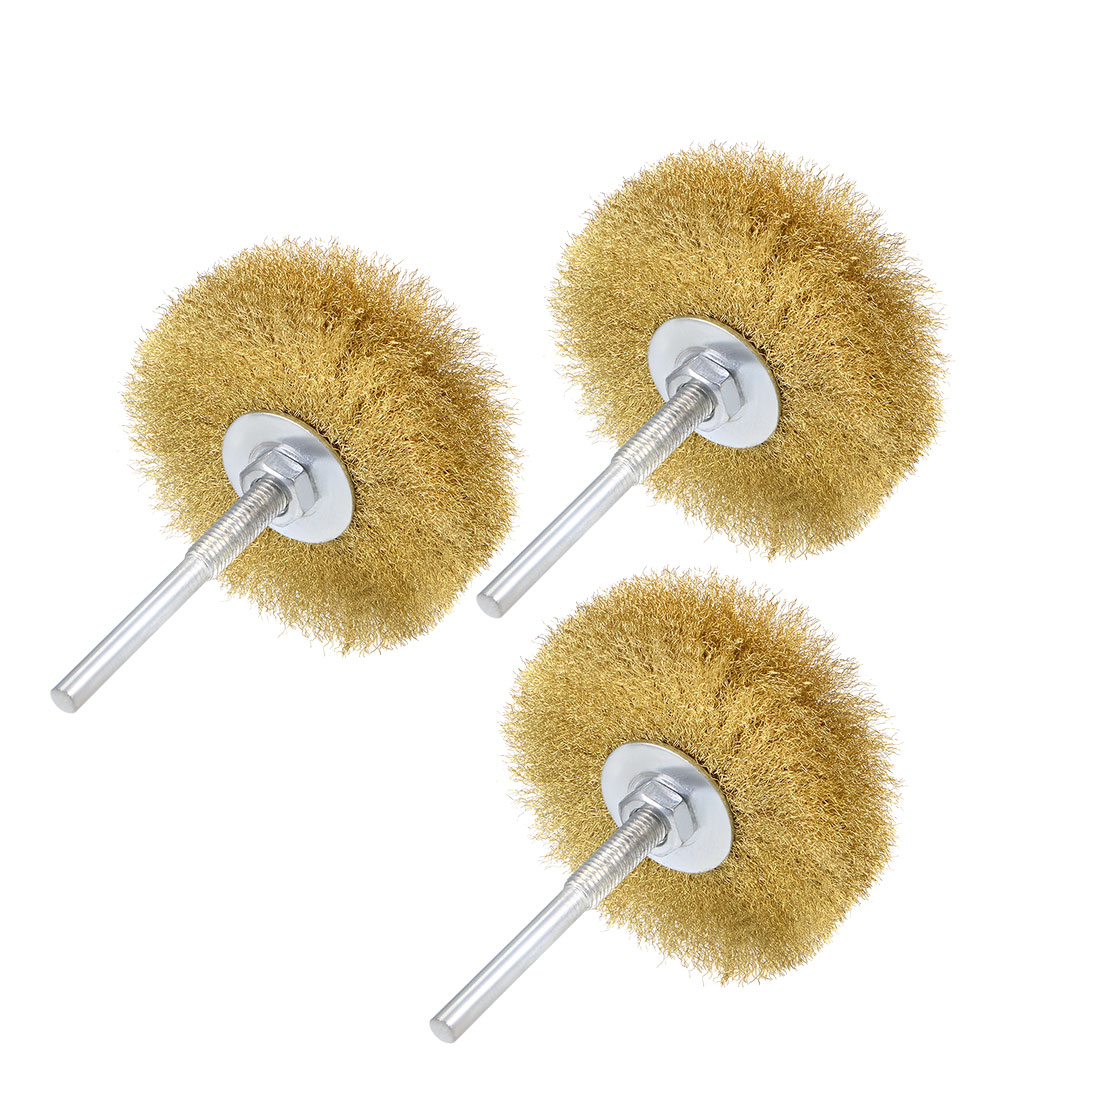 80mm Wire Wheel Brush Bench Brass Plated Crimped Steel 1/4 Inch Shank 3pcs